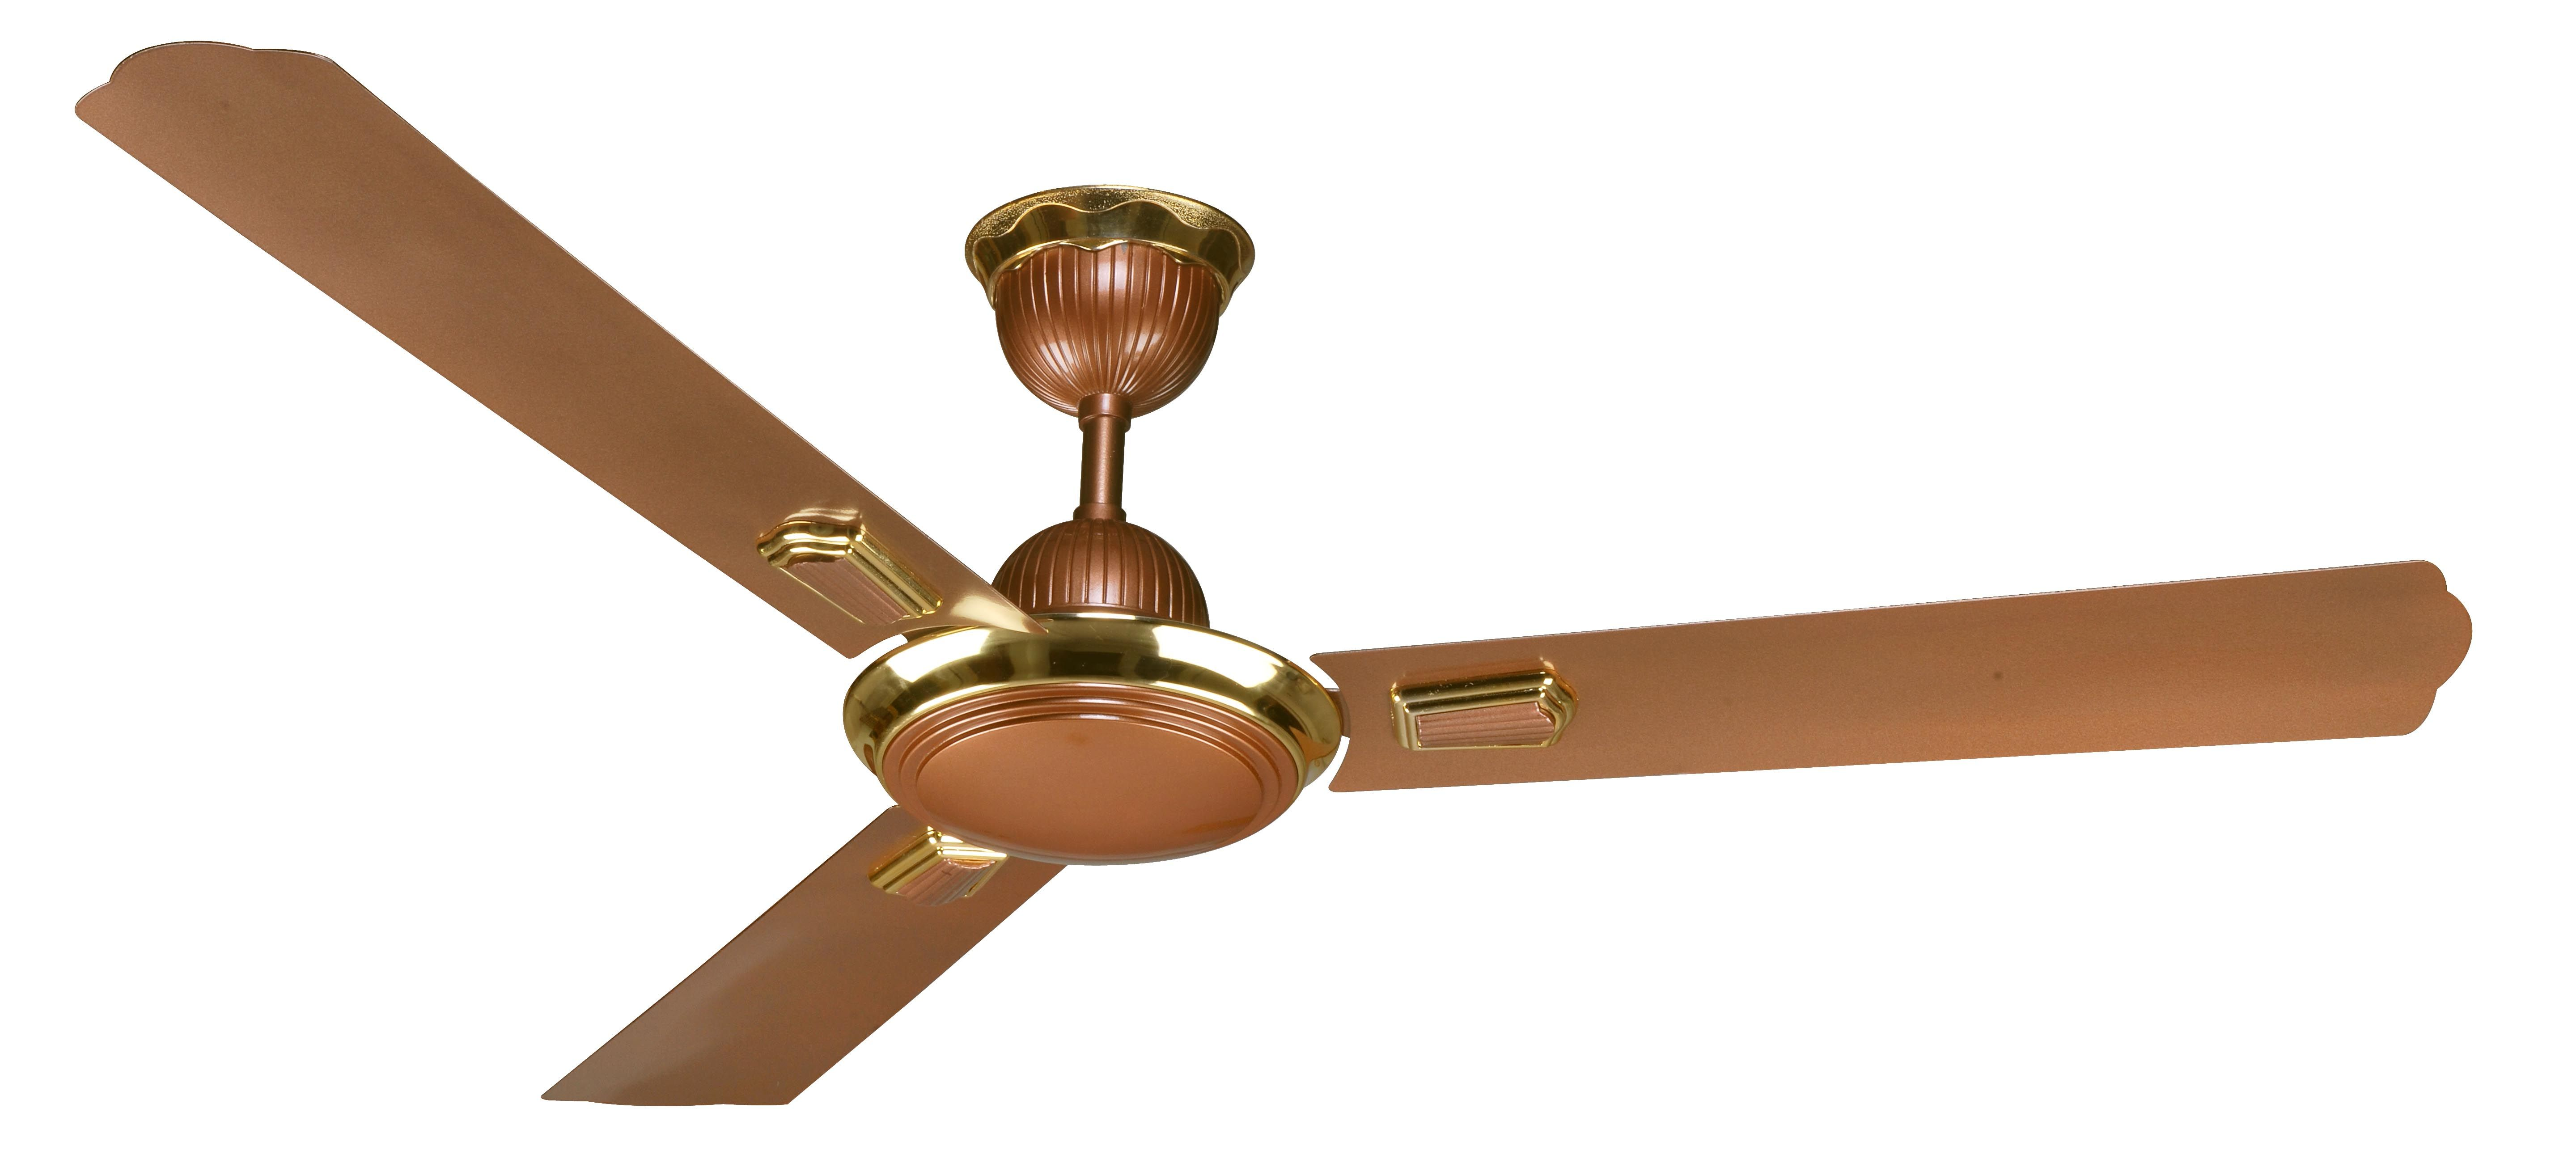 Classic Design With Appealing Brown Color Ceiling Fan With Gold